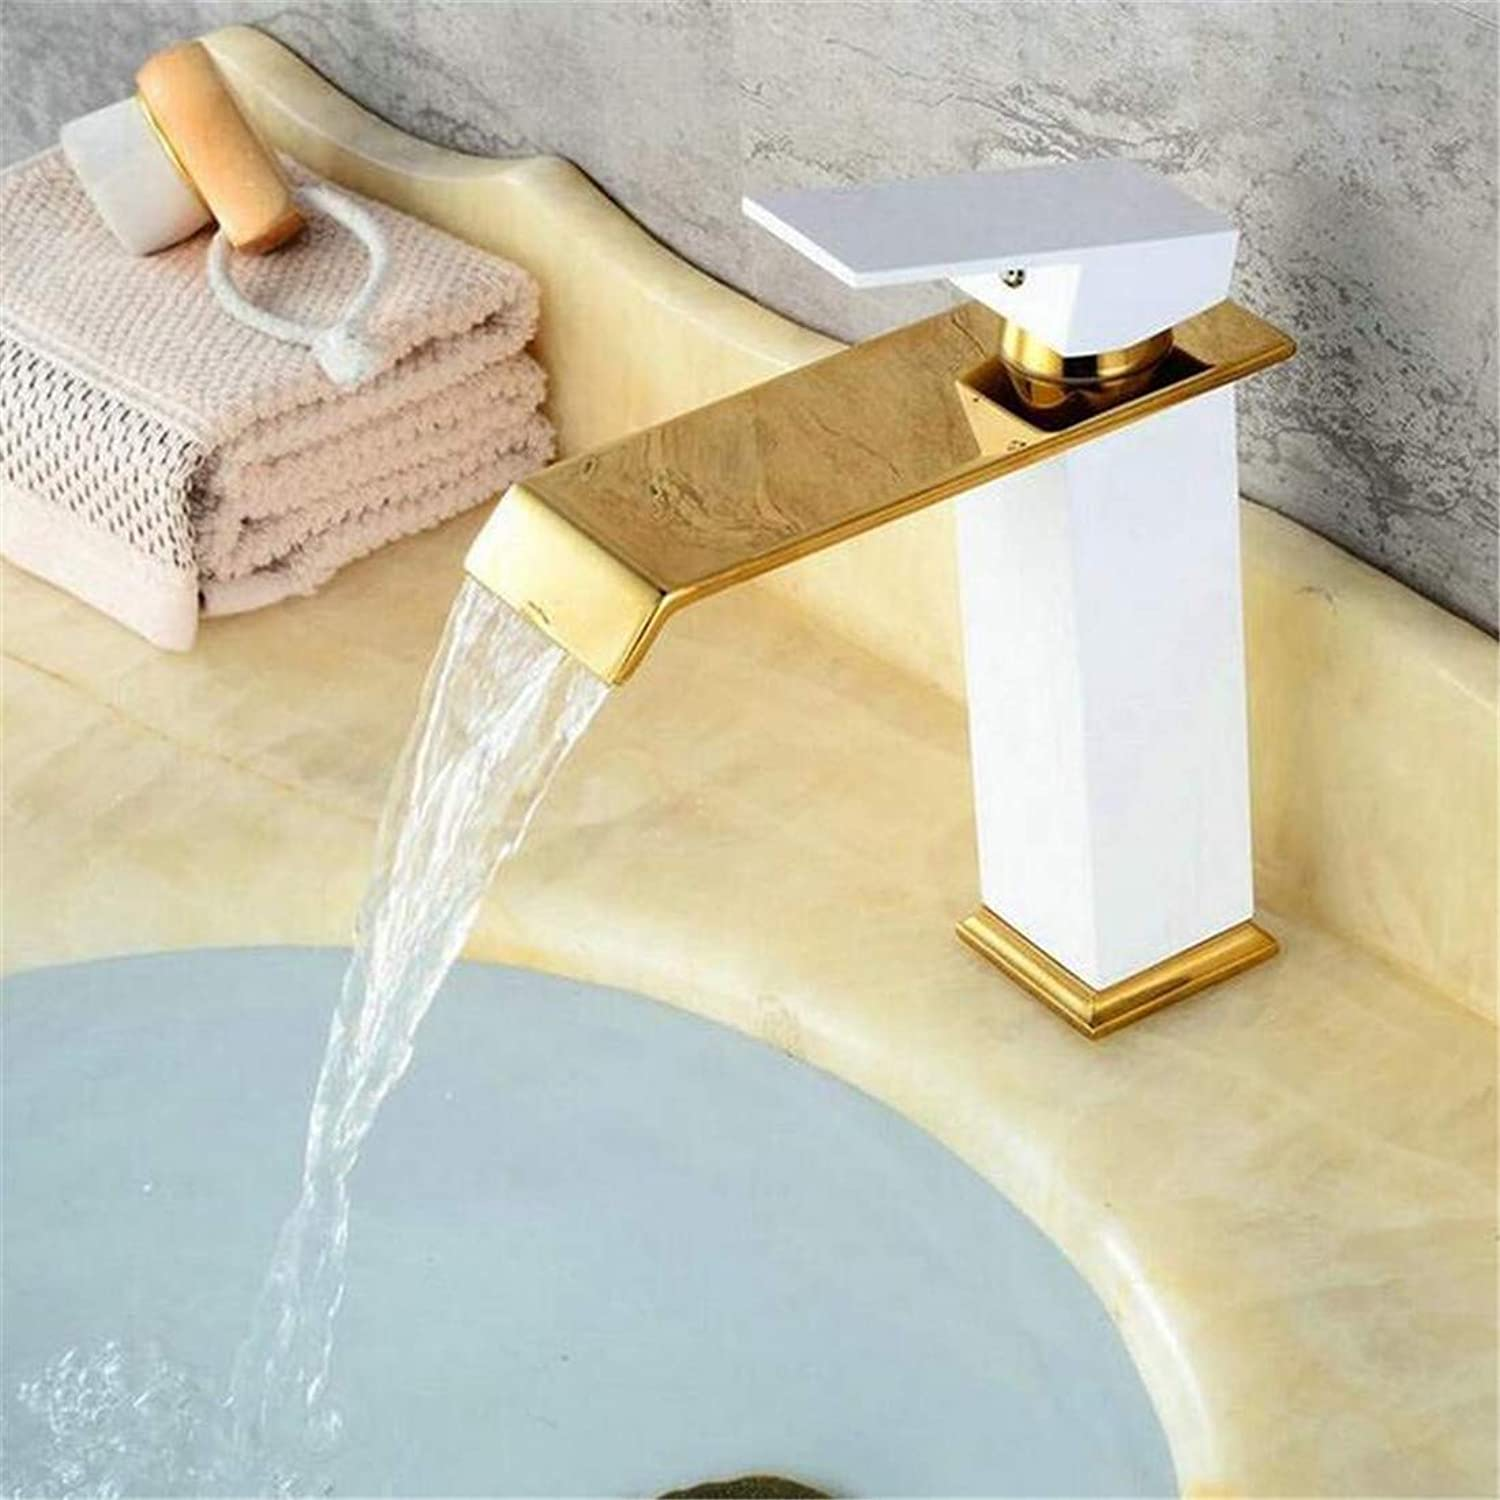 Retro Hot and Cold Faucet Vintage Platingfaucets Basin Mixer Brass White and gold Plated Bathroom Faucet Square Basin Faucet